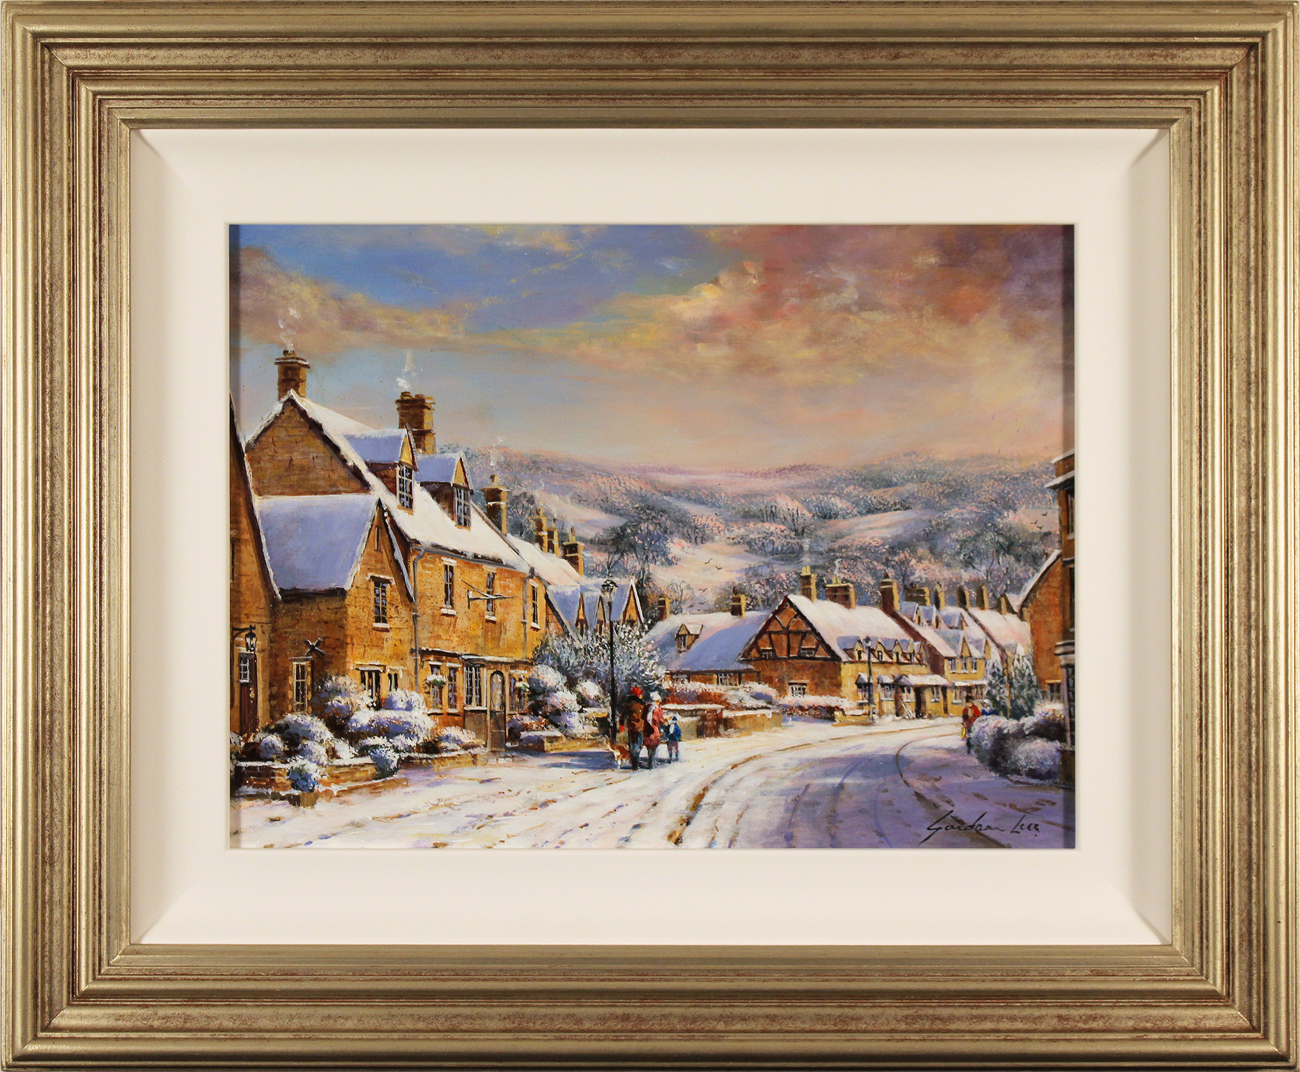 Gordon Lees, Original oil painting on panel, A Snowy Broadway, The Cotswolds Click to enlarge